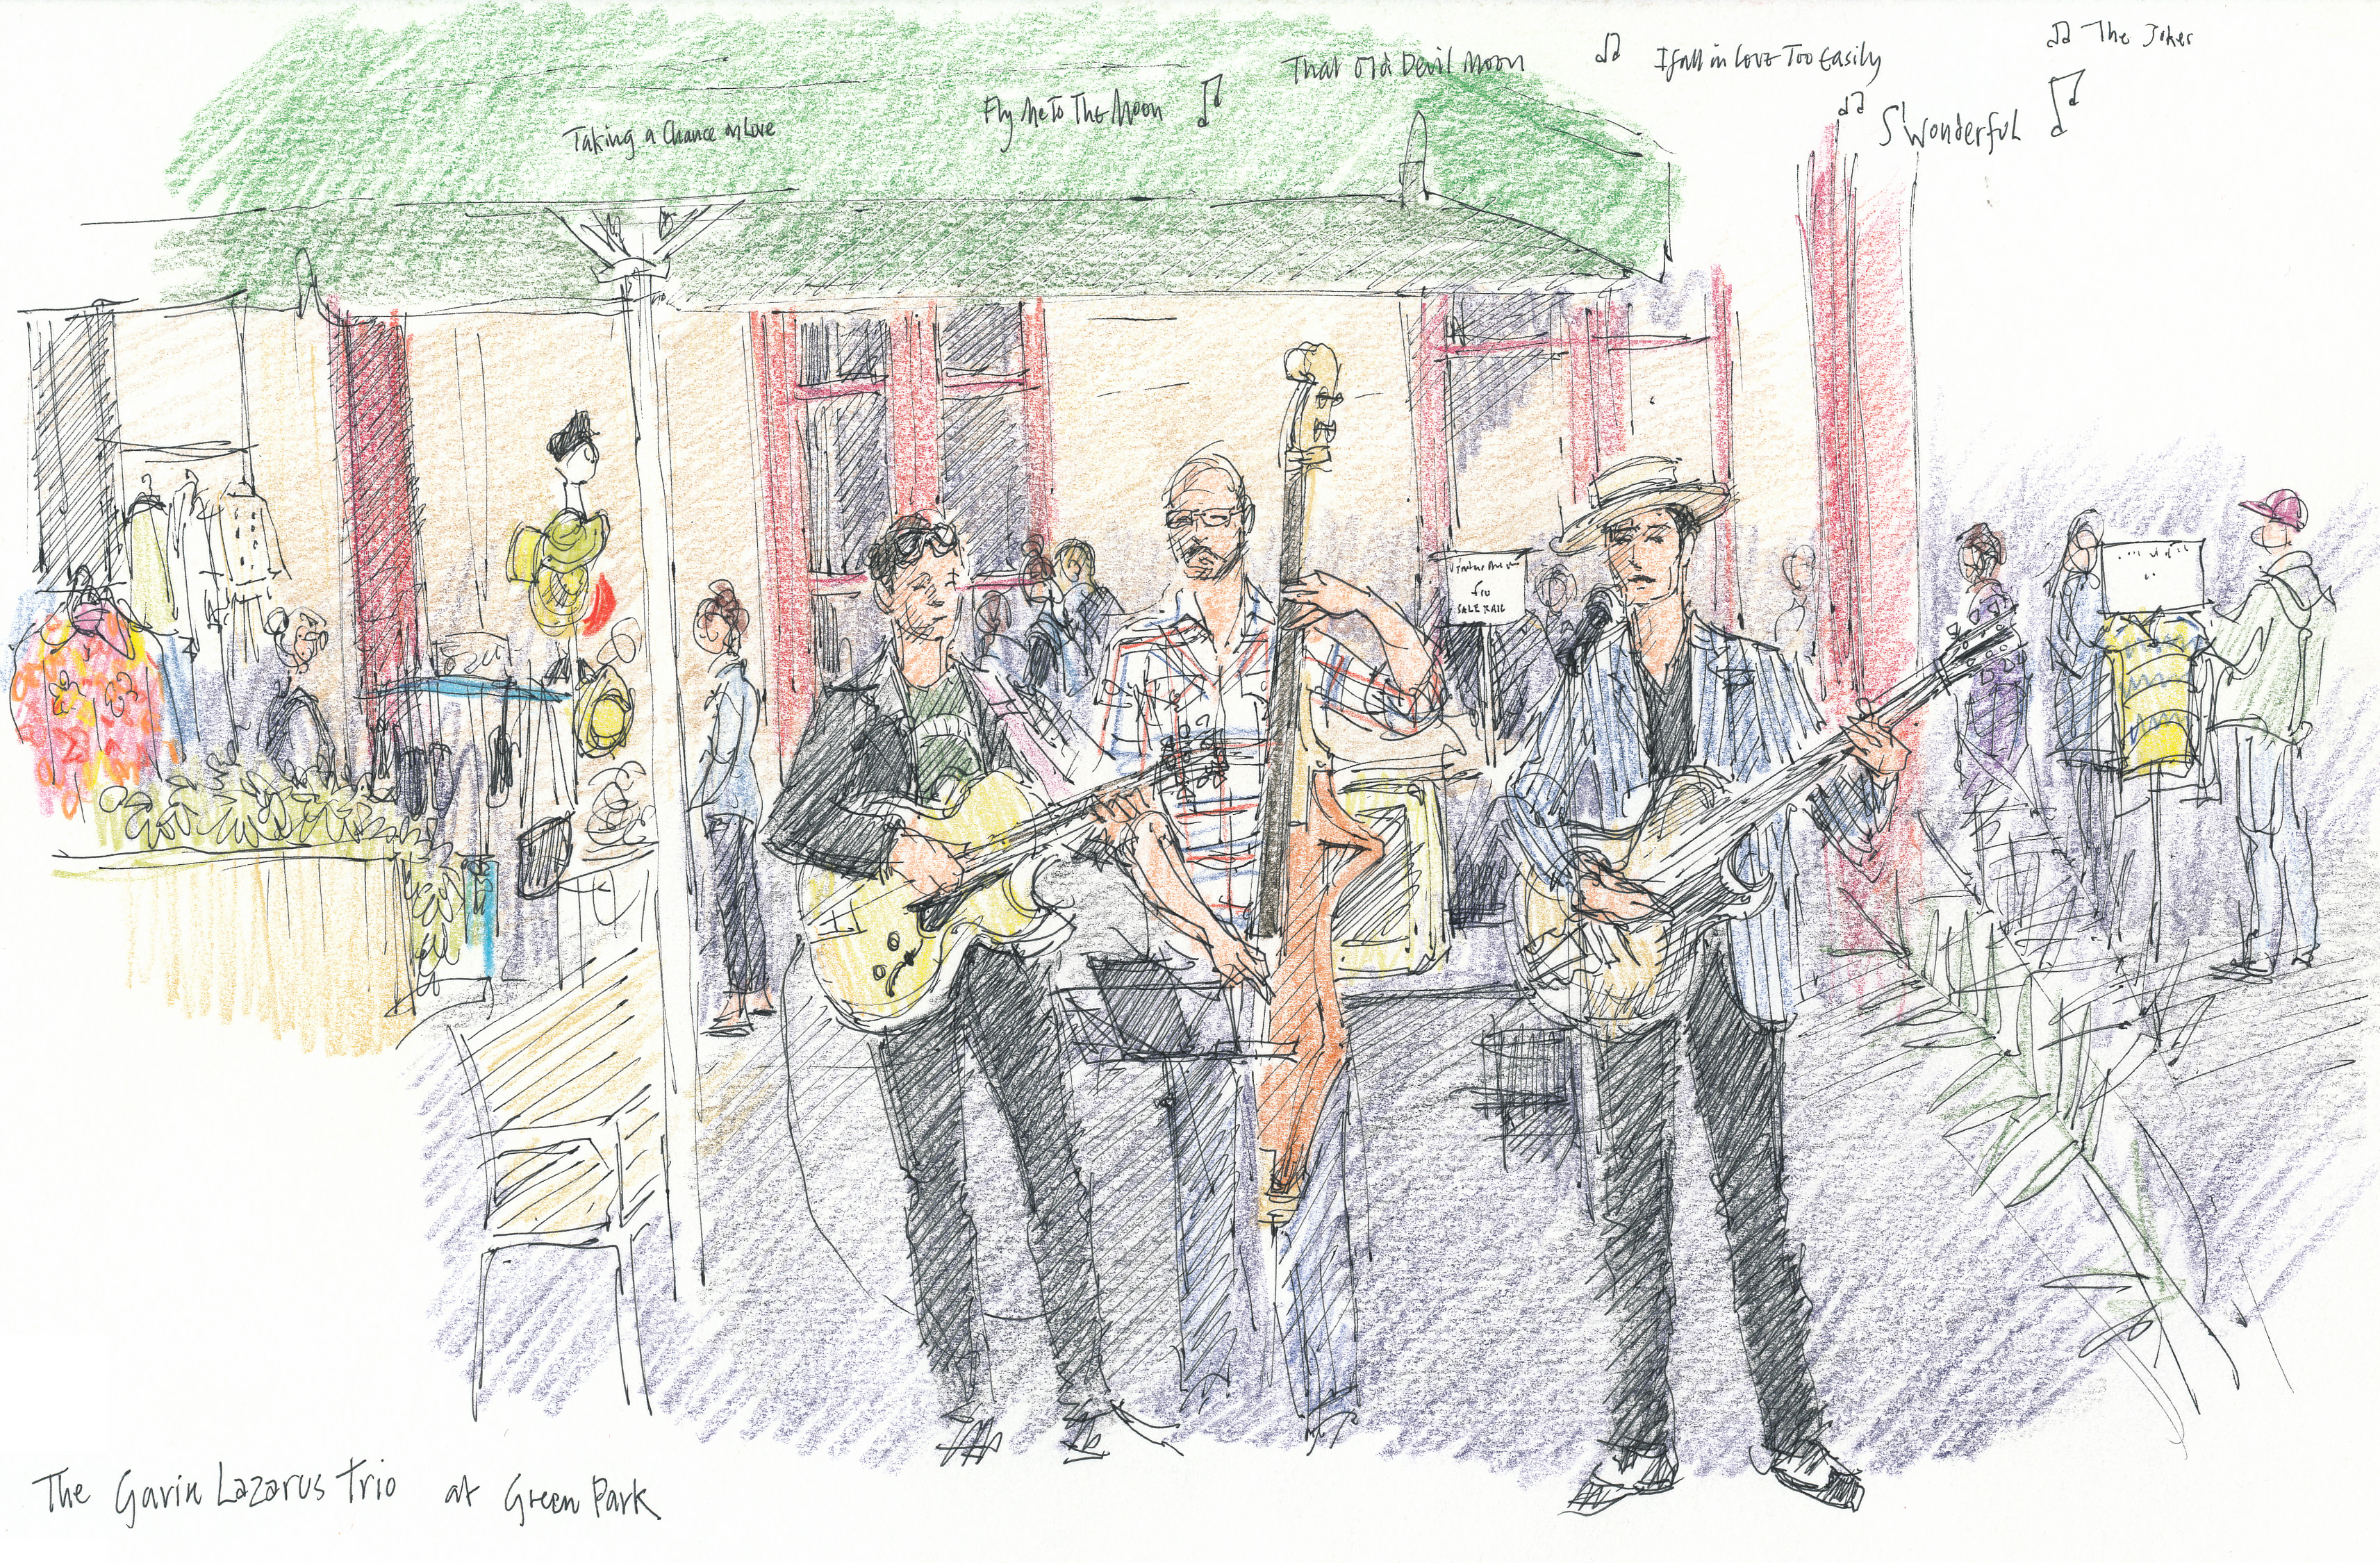 event illustration - Sarah Godsill, Bath in Fashion, Gavin Lazarus trio at Green Park Station